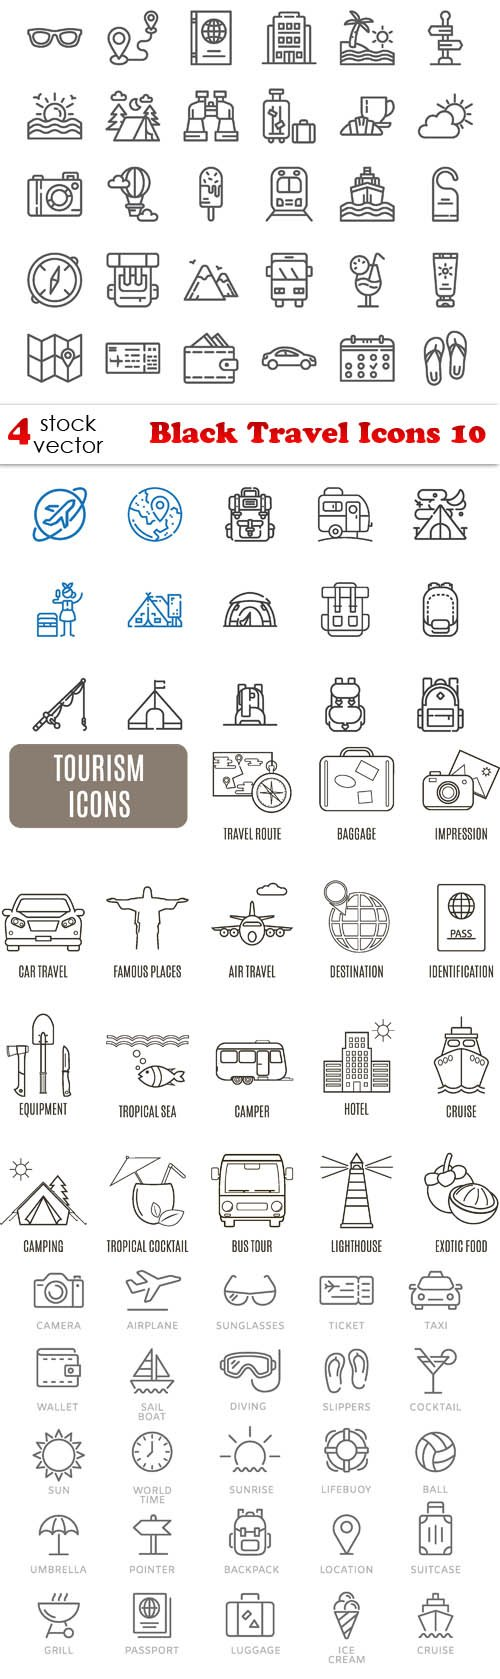 Vectors - Black Travel Icons 10